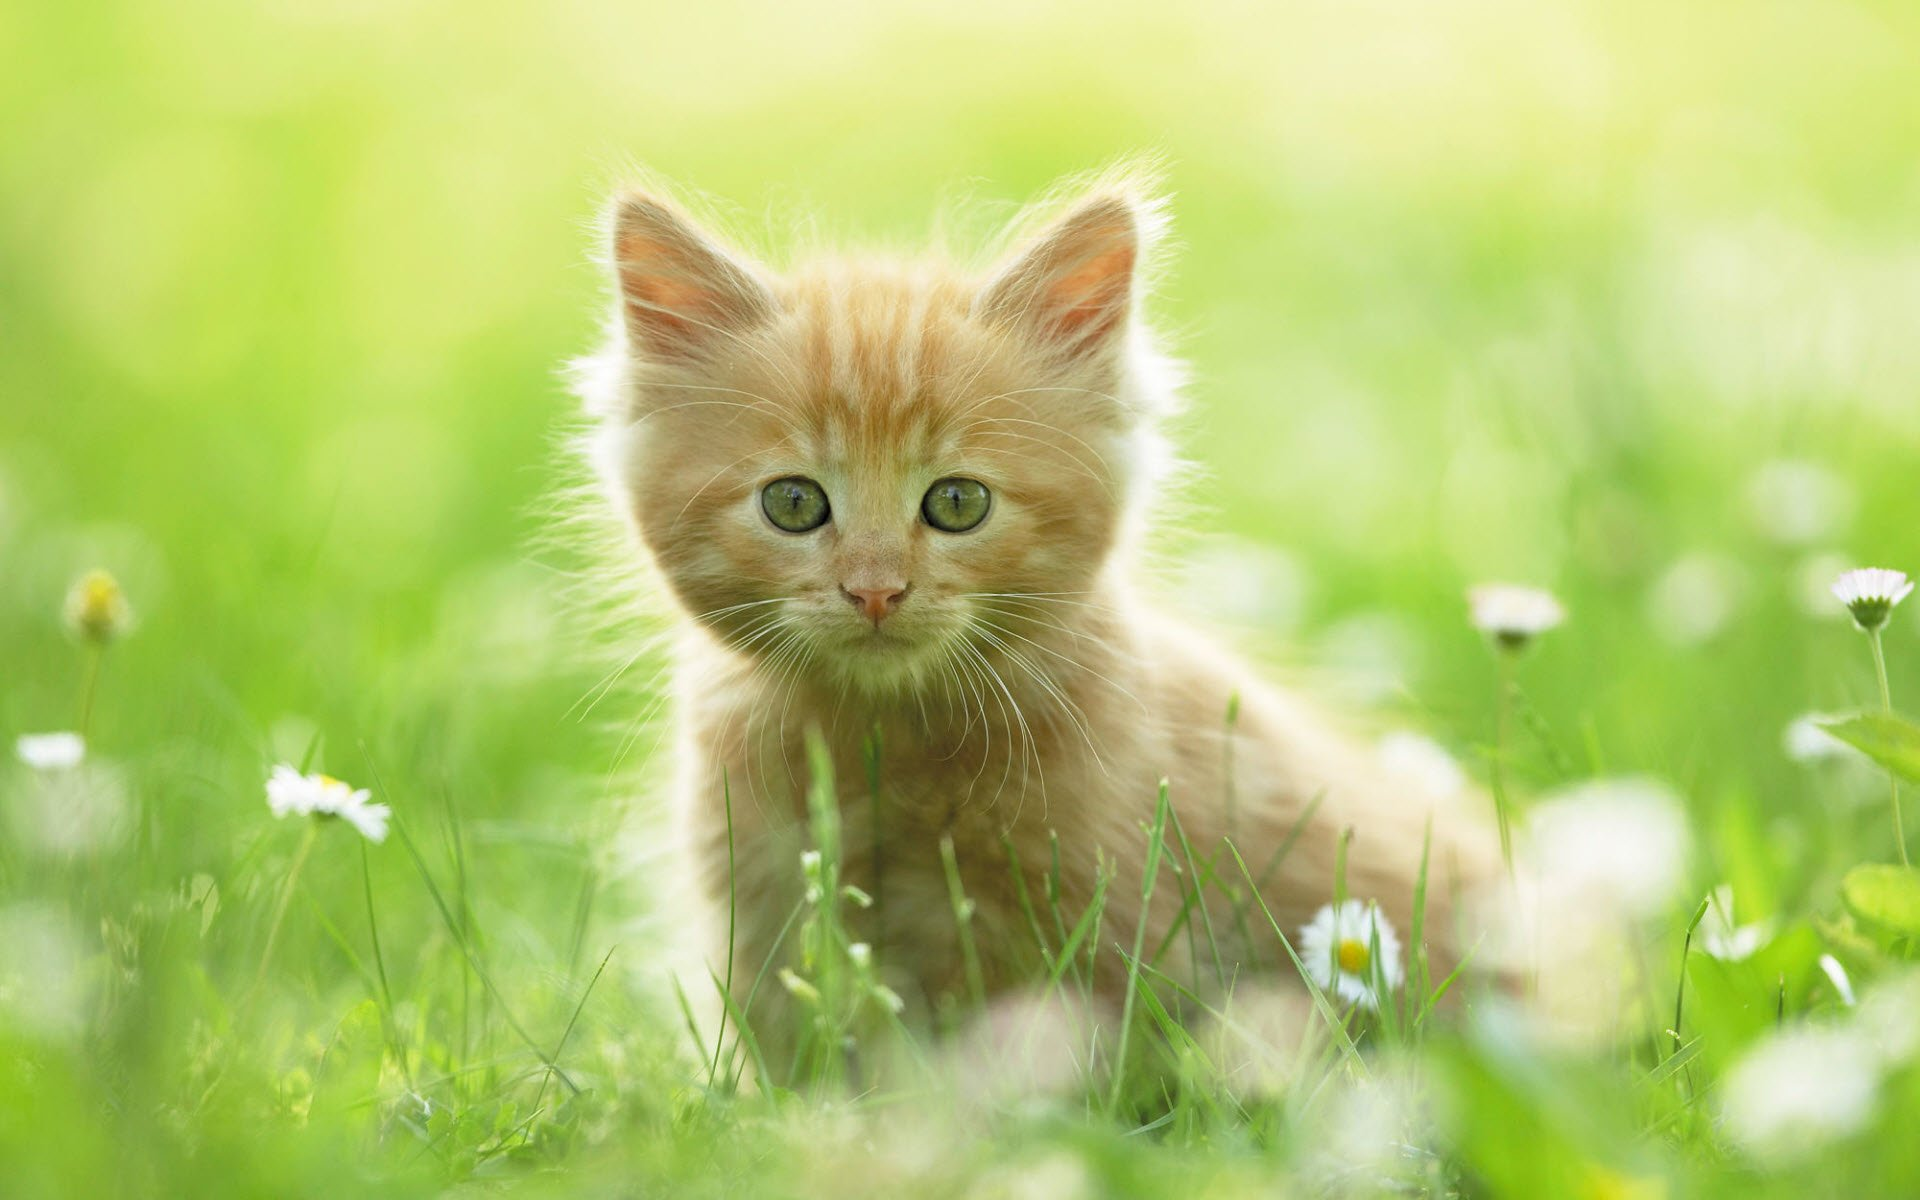 hd wallpaper kitten balance hd wallpaper curious kittens hd wallpaper 1920x1200